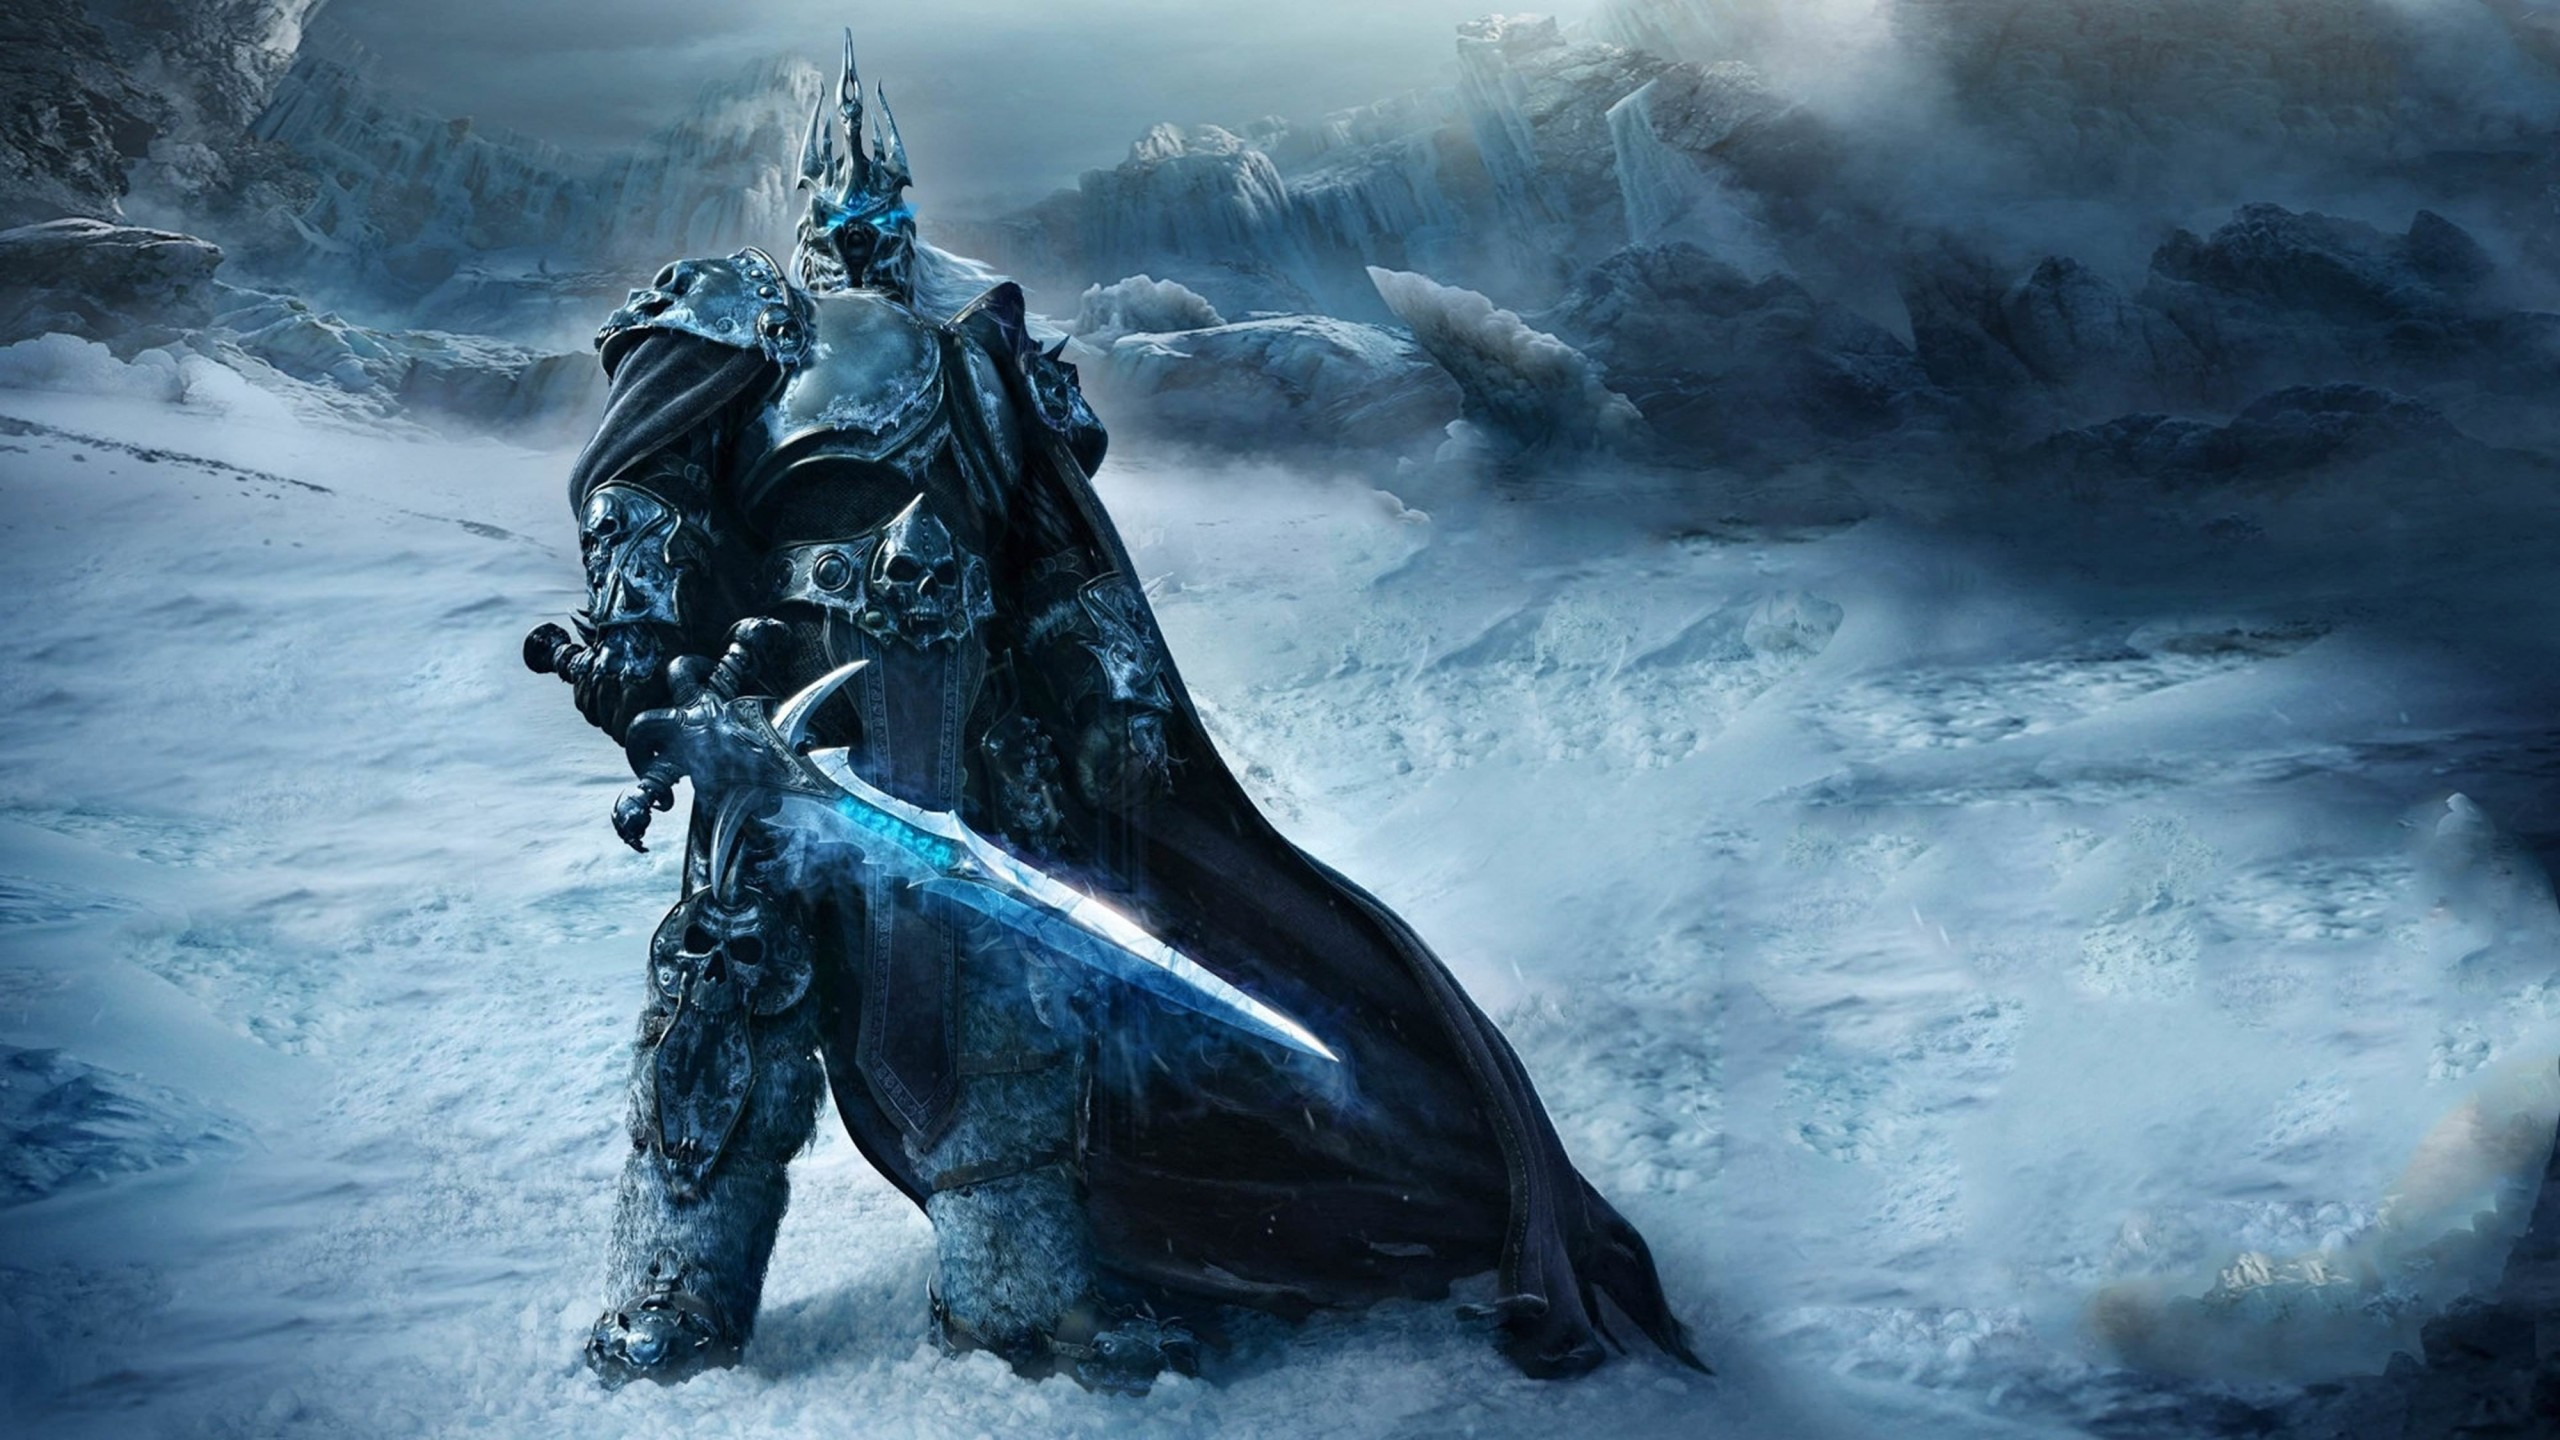 World of Warcraft: Wrath of the Lich King Wallpaper for Social Media YouTube Channel Art